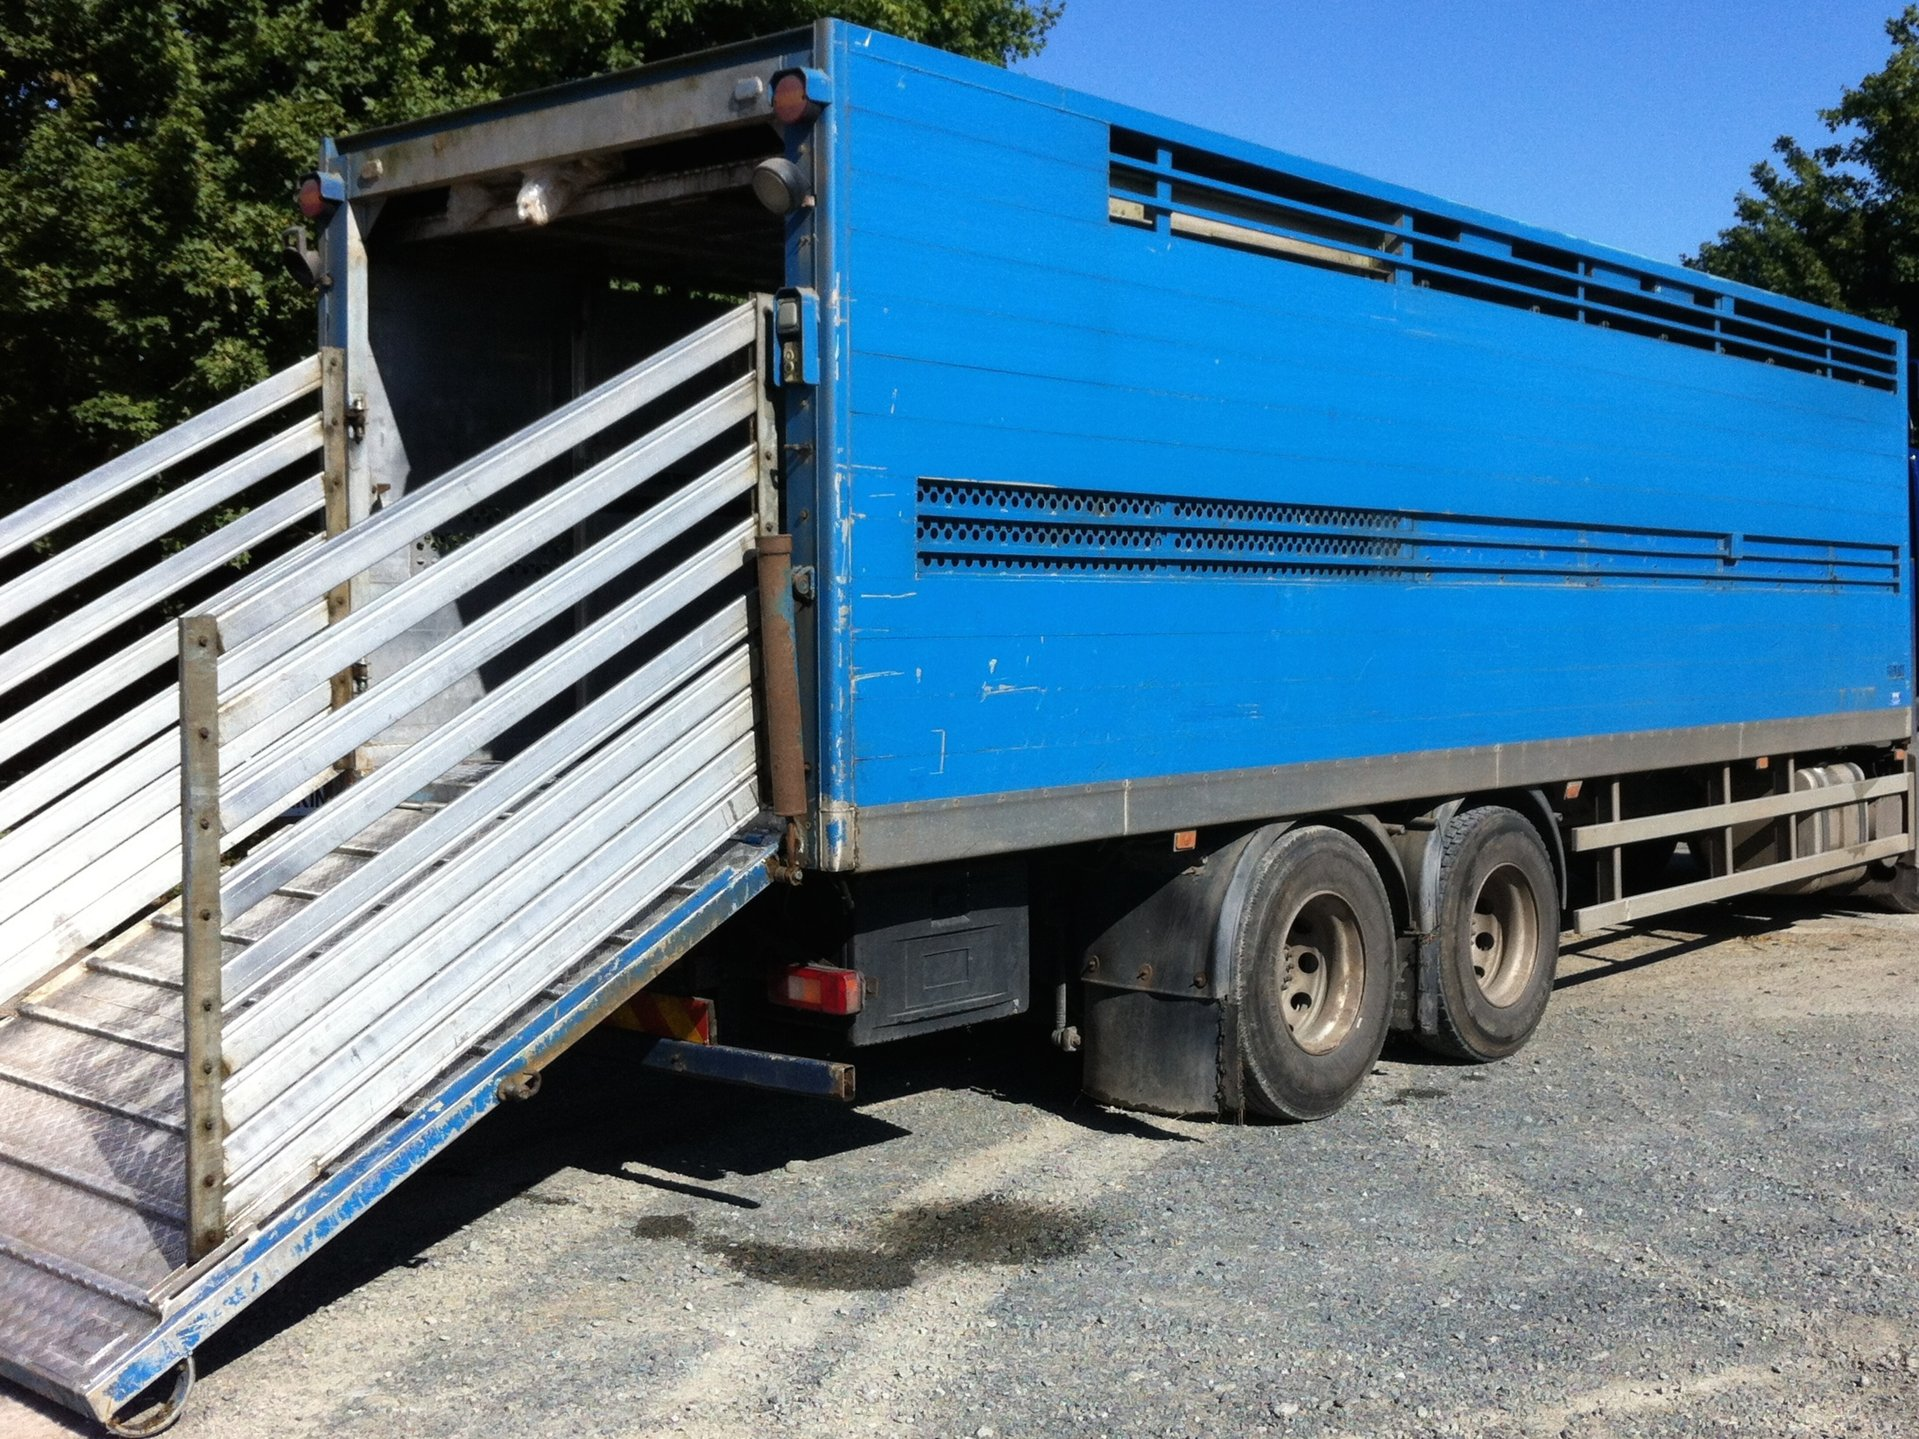 Truck Box For Sale >> Livestock Truck Boxes For Sale The Farming Forum